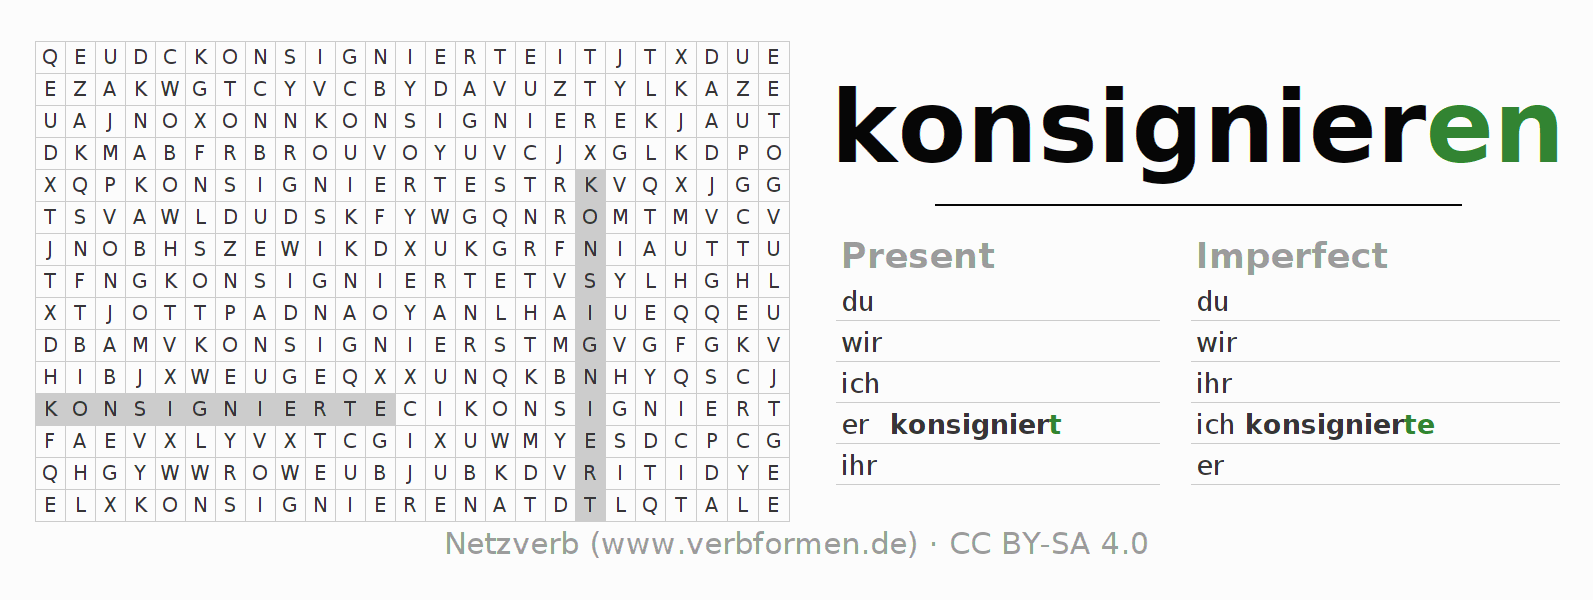 Word search puzzle for the conjugation of the verb konsignieren